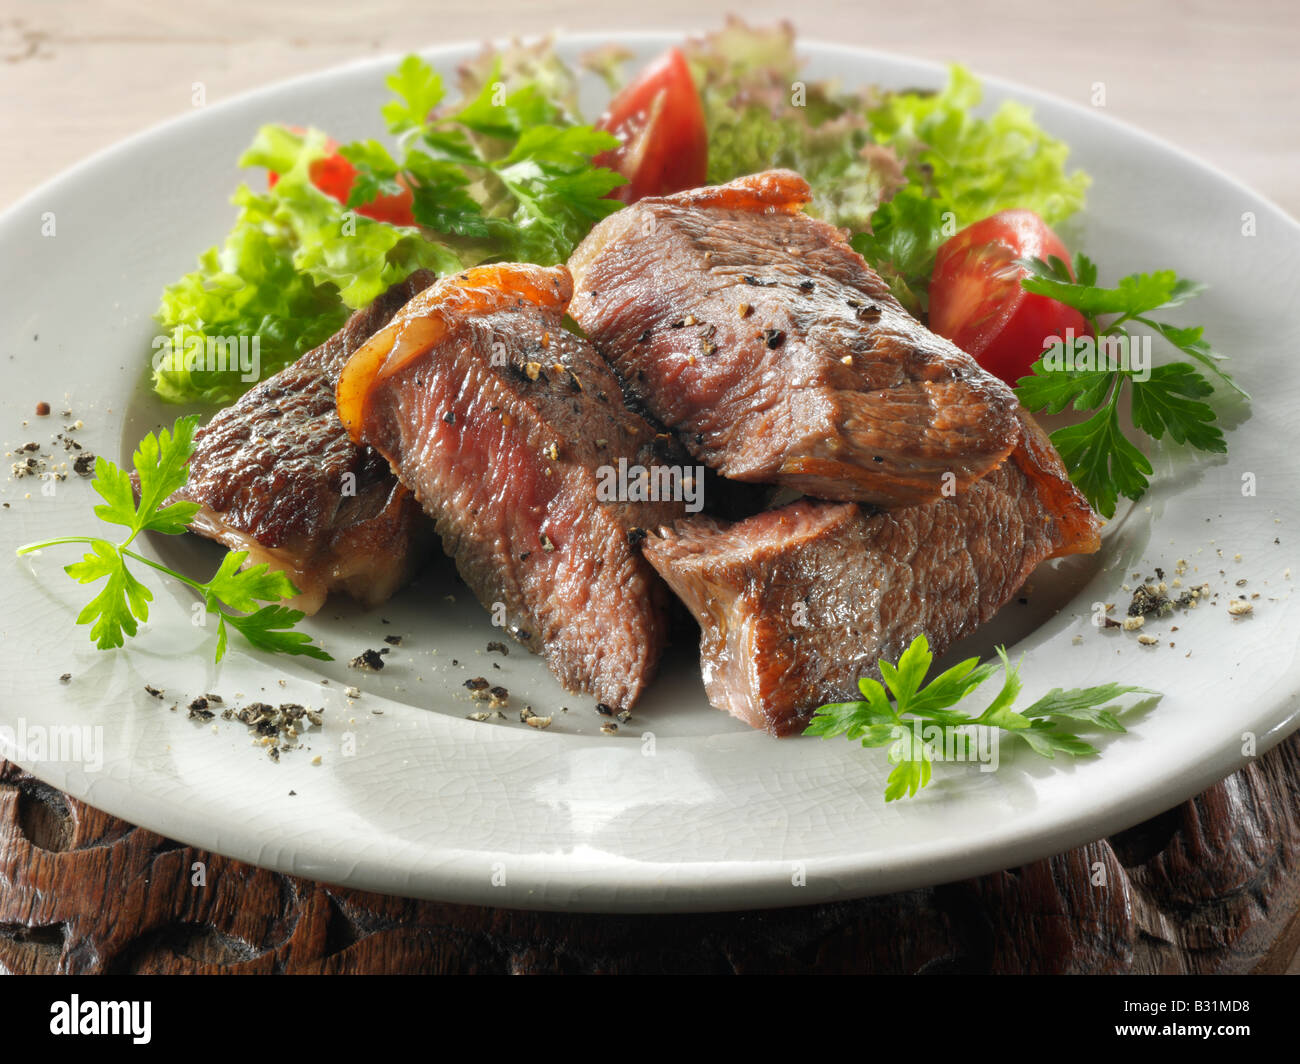 sirloin beef steak and fresh mixed salad - Stock Image